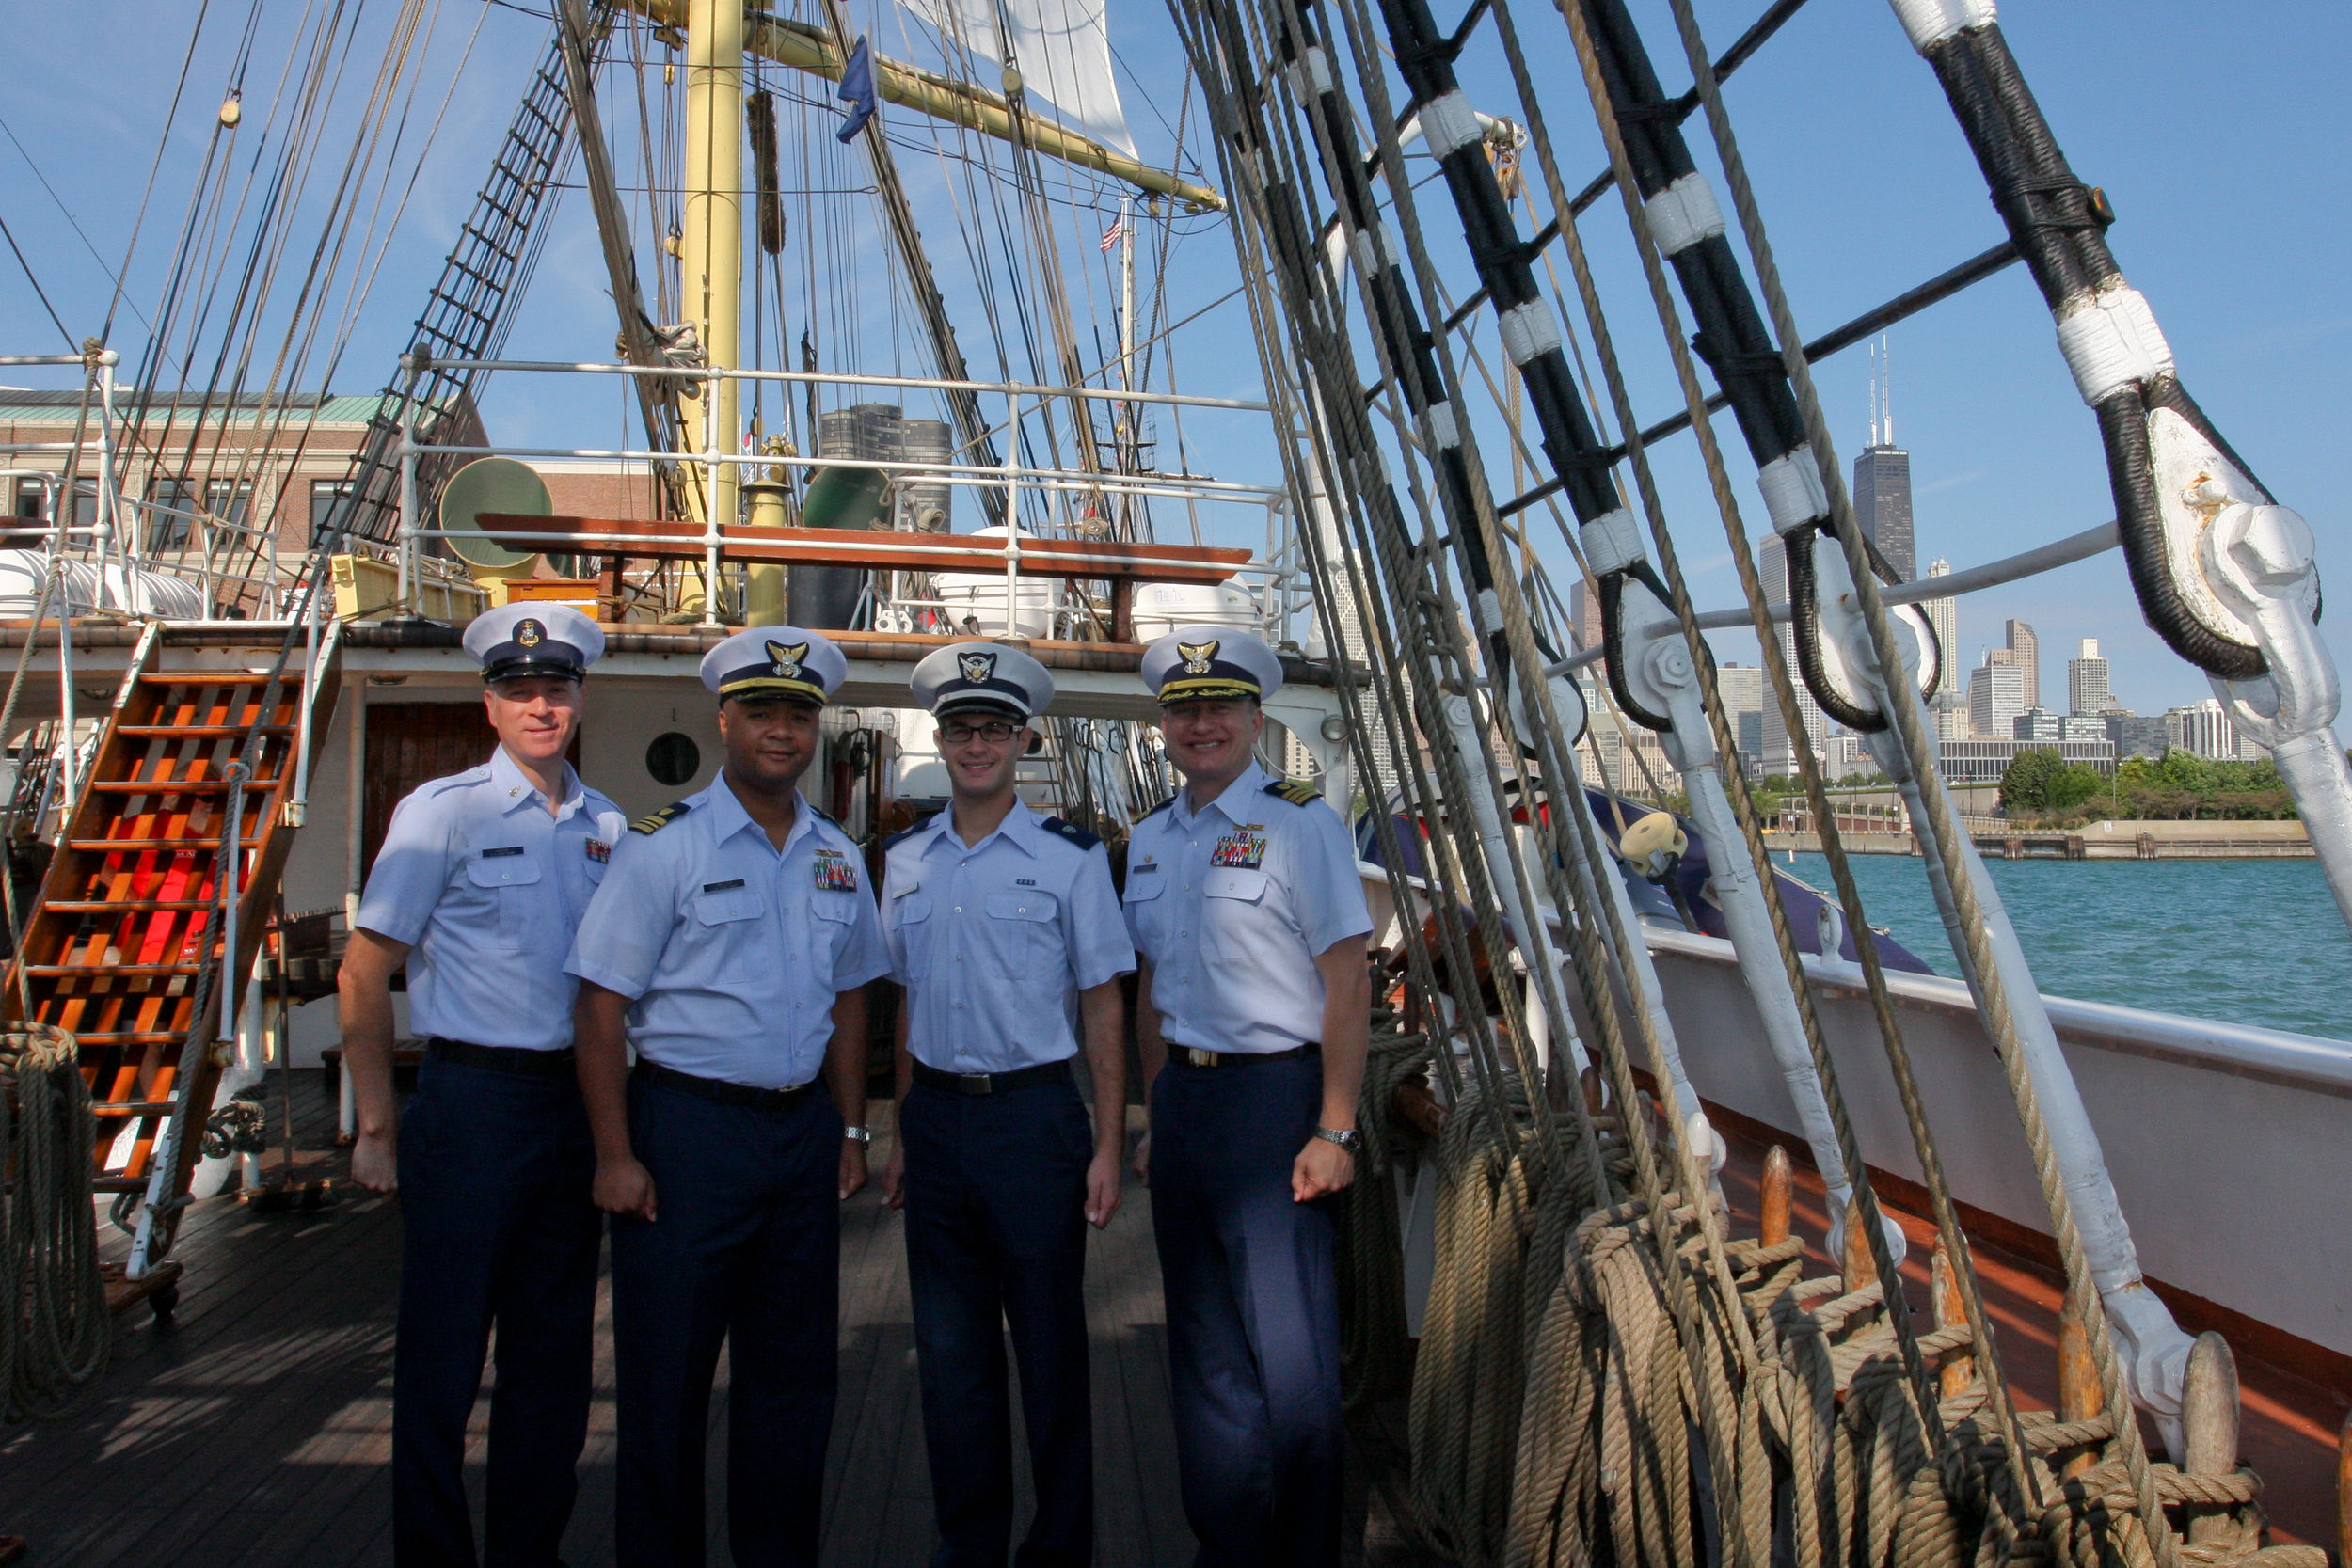 Roth poses with Cmdr. Jason Neubauer,commanding officer of Coast Guard Marine Safety Unit Chicago; Lt. Cmdr. Stacy Miller, executive officer; and Chief Petty Officer Alan Haraf on the tall ship Sorlandet at Navy Pier in Chicago, Aug. 8, 2013. Roth was a Coast Guard Ninth District public affairs intern with Haraf at MSU Chicago for eight weeks. U.S. Coast Guard photo.